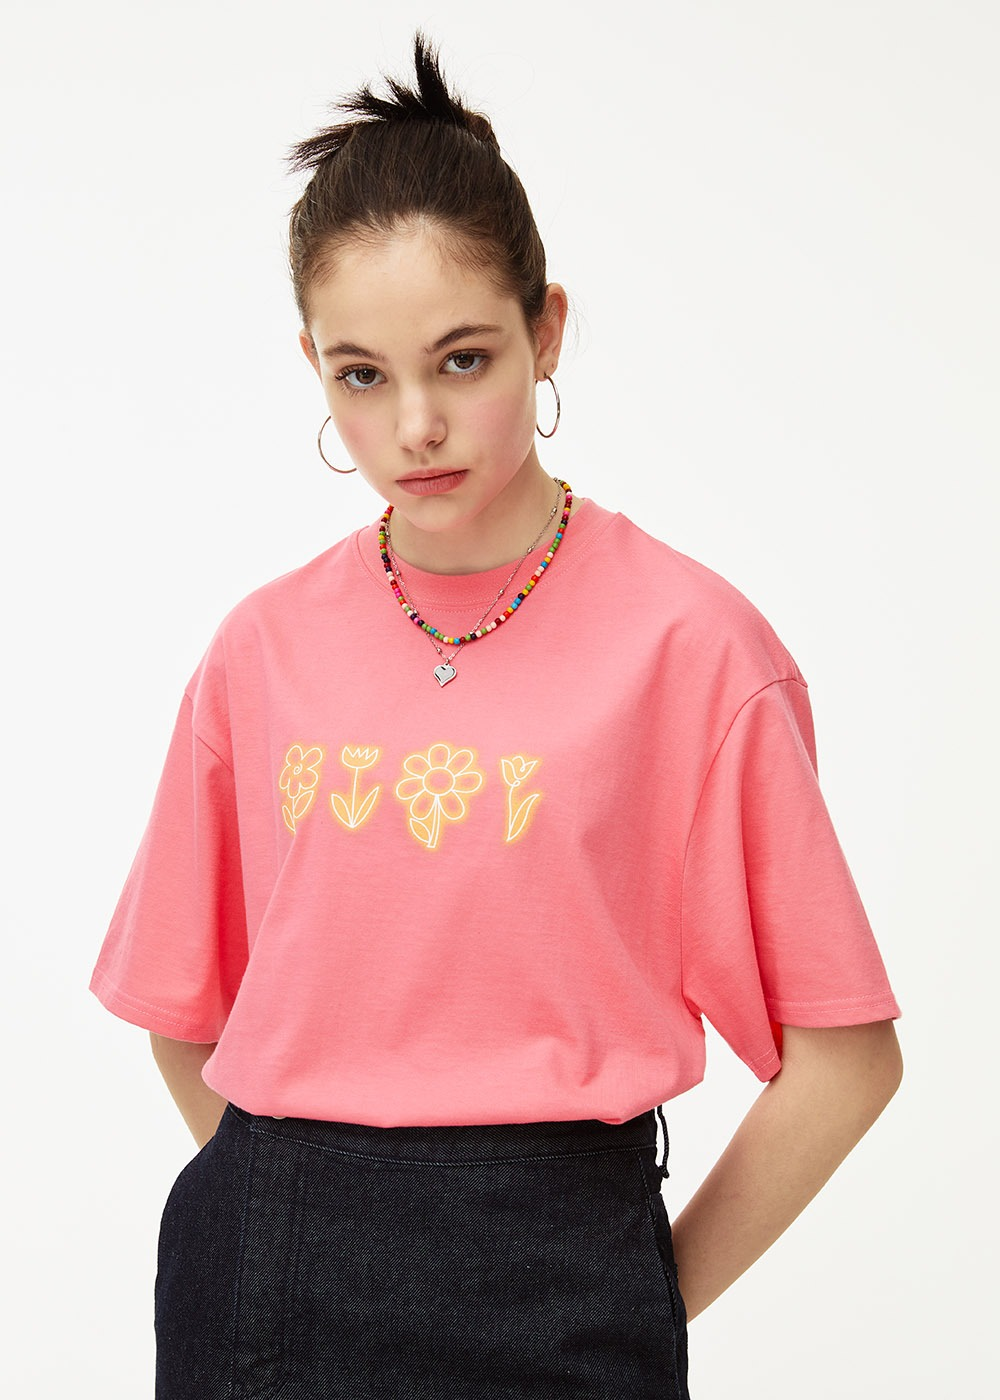 Flower drawing Over fit T-shirt [PINK]Flower drawing Over fit T-shirt [PINK]자체브랜드